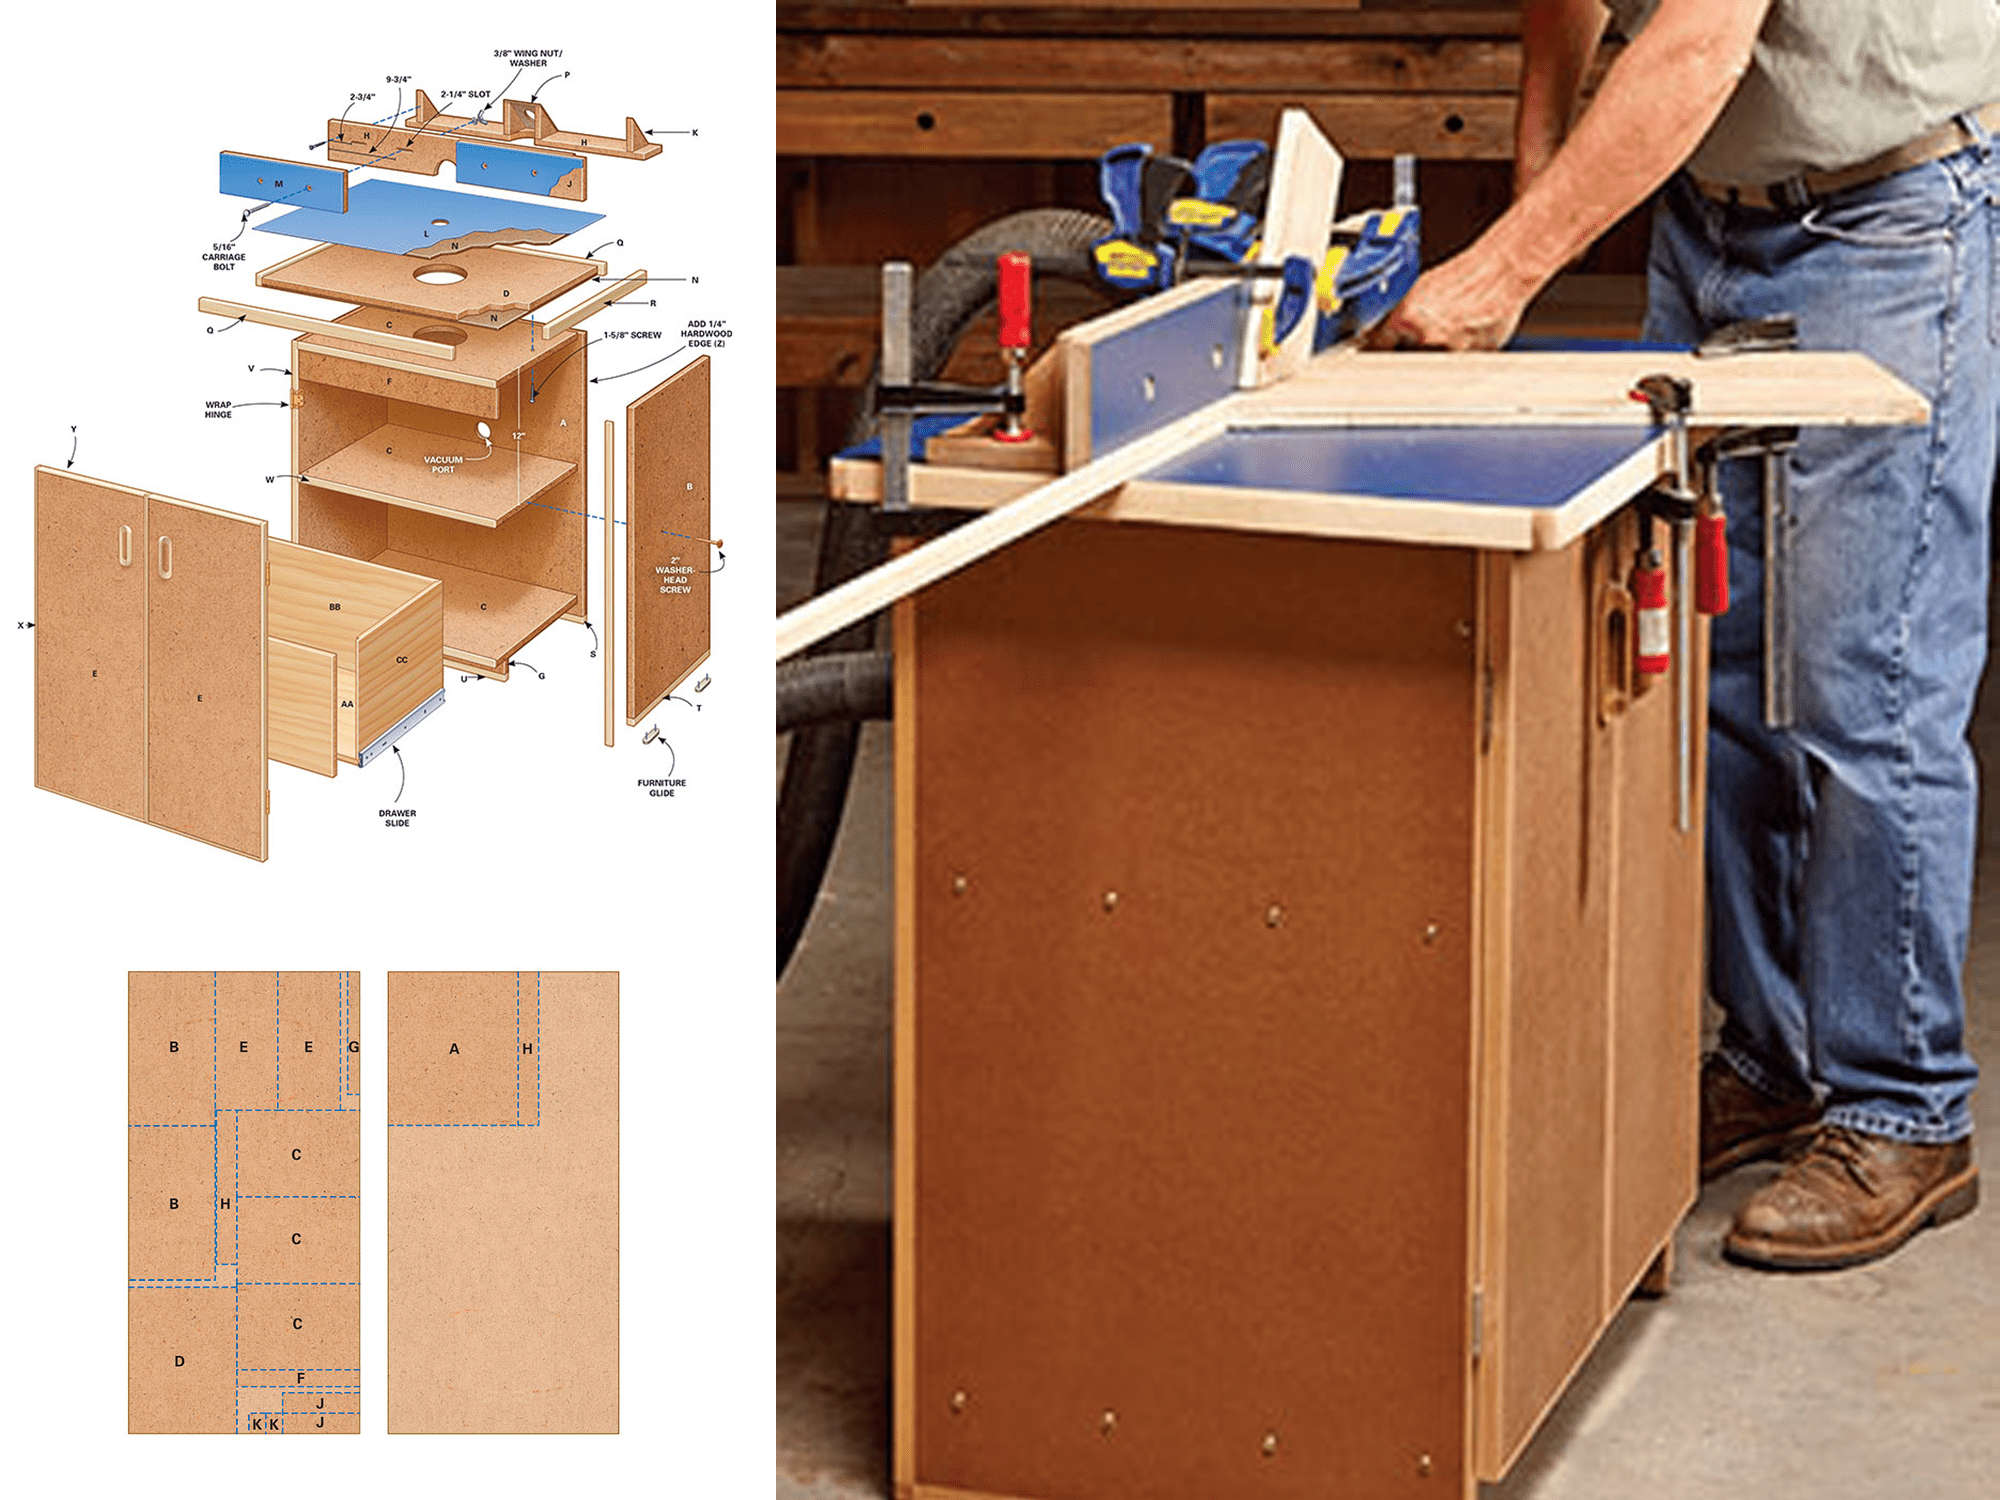 9 free diy router table plans you can use right now keyboard keysfo Images